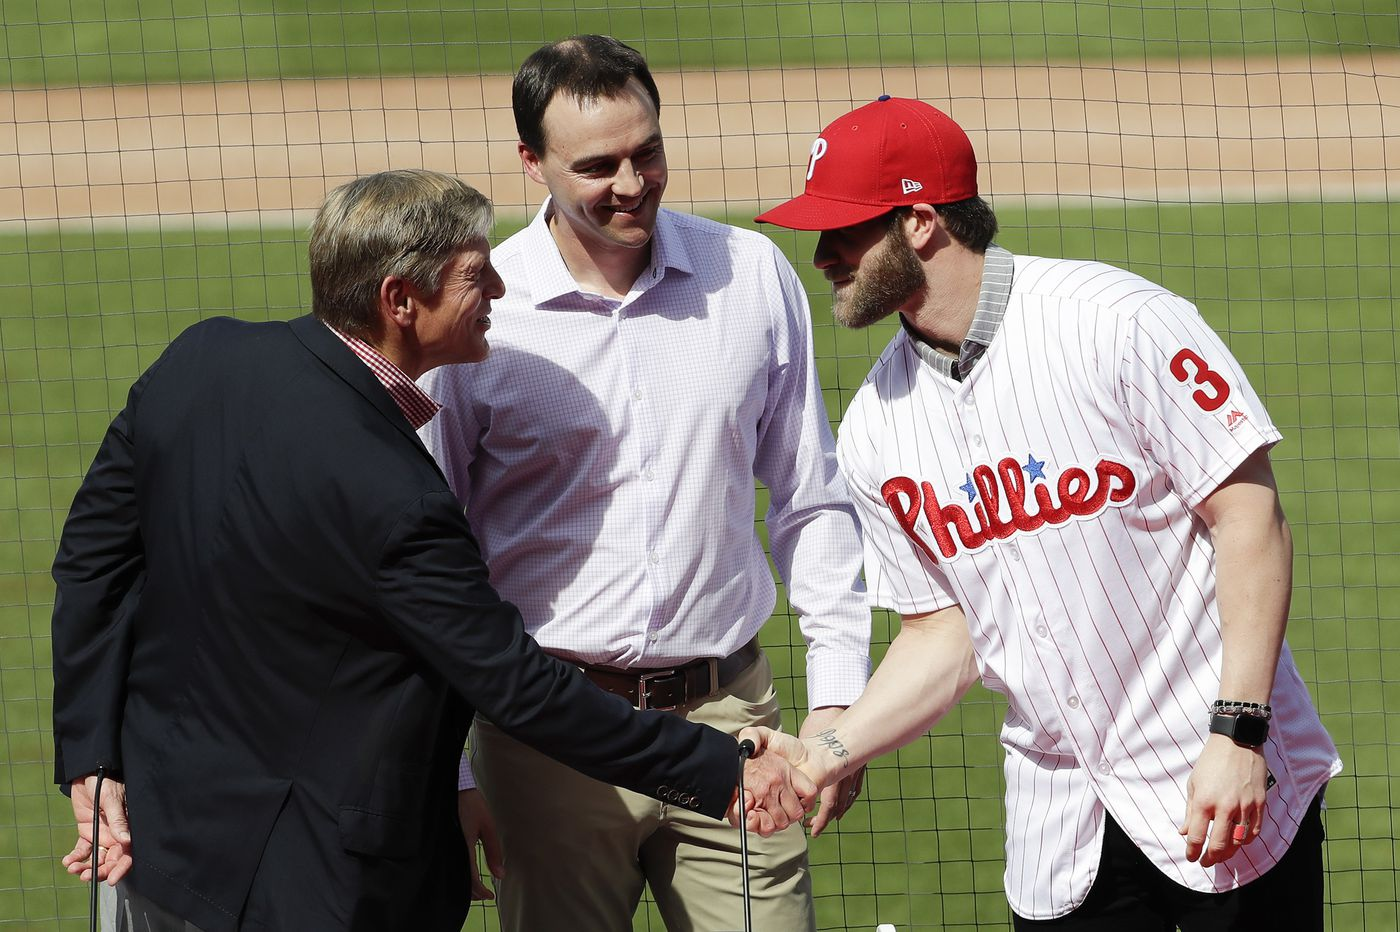 In closing the Bryce Harper deal, Phillies owner John Middleton has his Steinbrenner moment | Scott Lauber